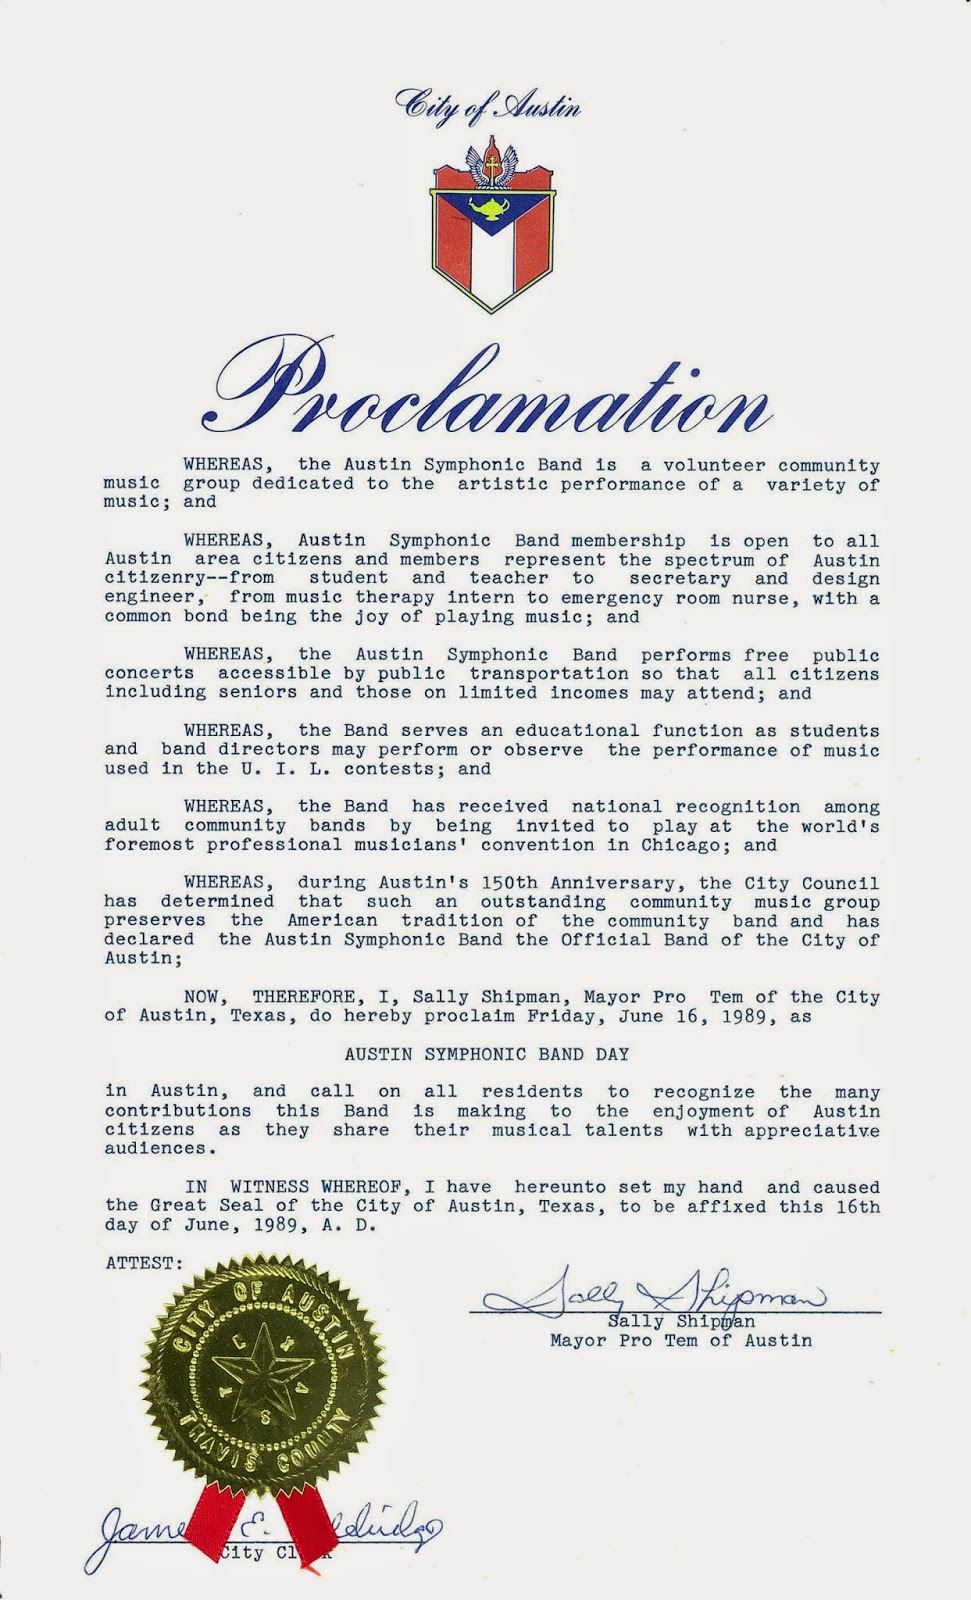 Smoot Carl Mitchell presents Official Band of the City of Austin Proclamation, June 16, 1989.